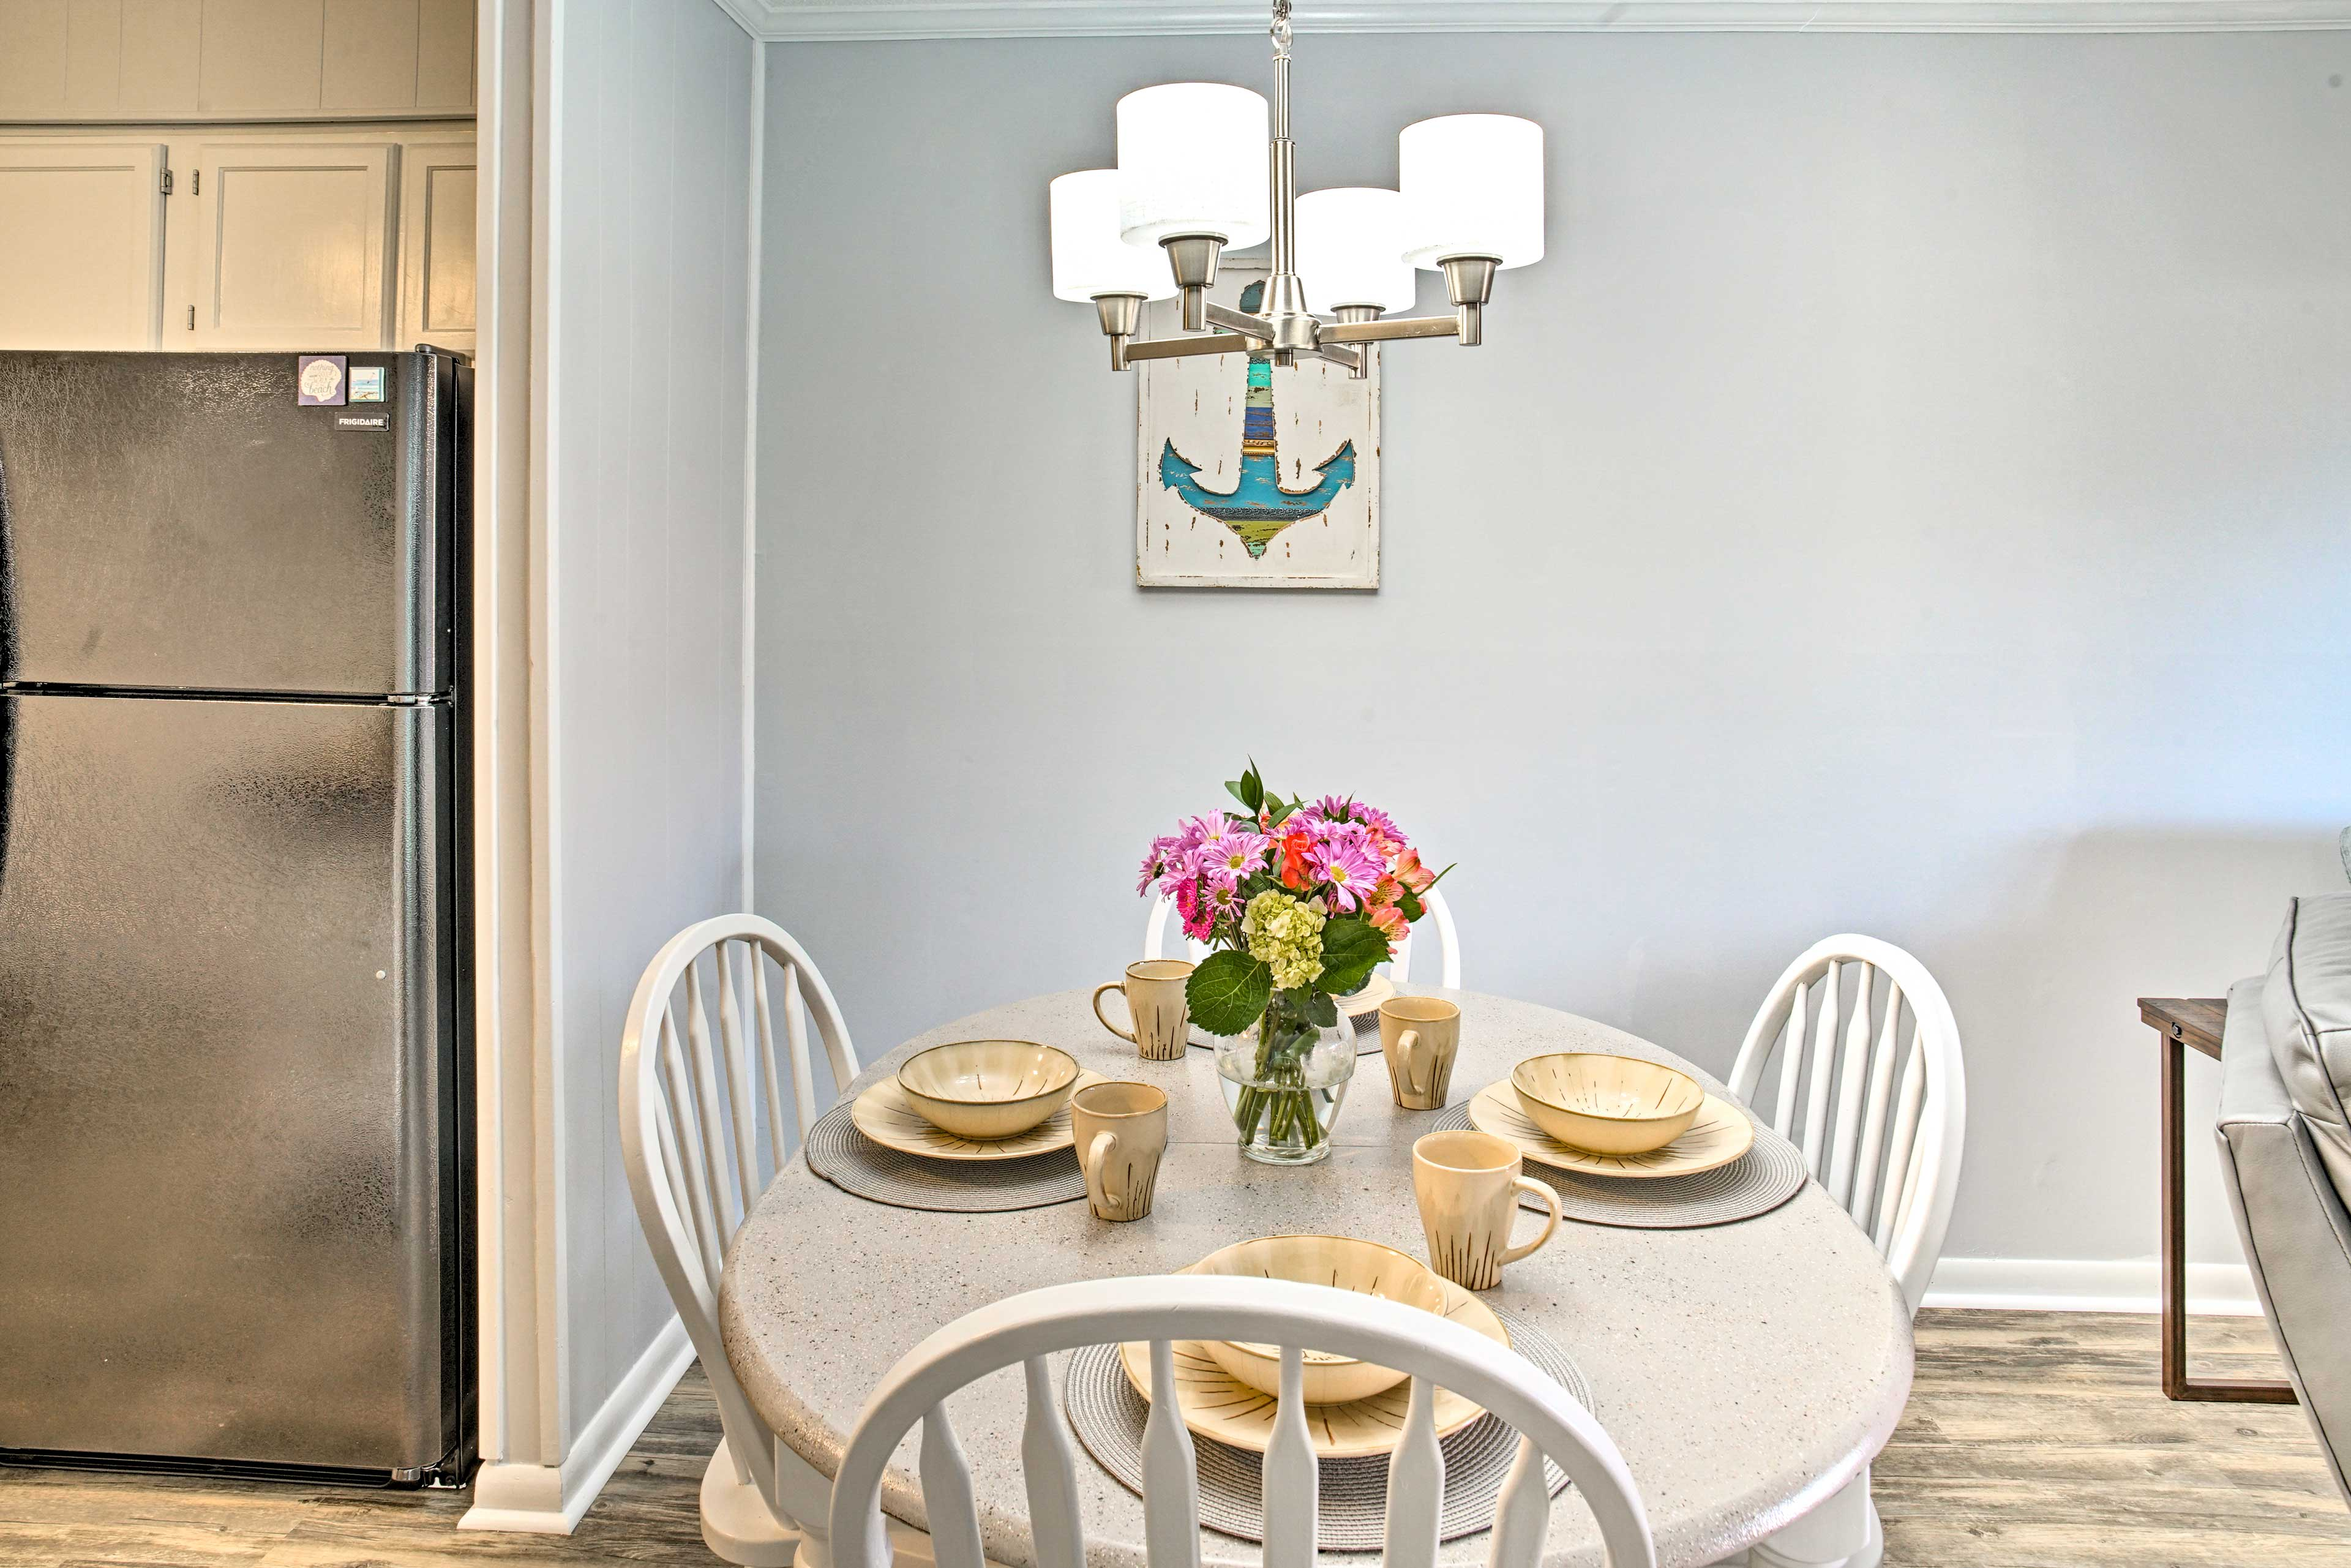 You'll feel right at home as you dine with the family at the 4-person table.